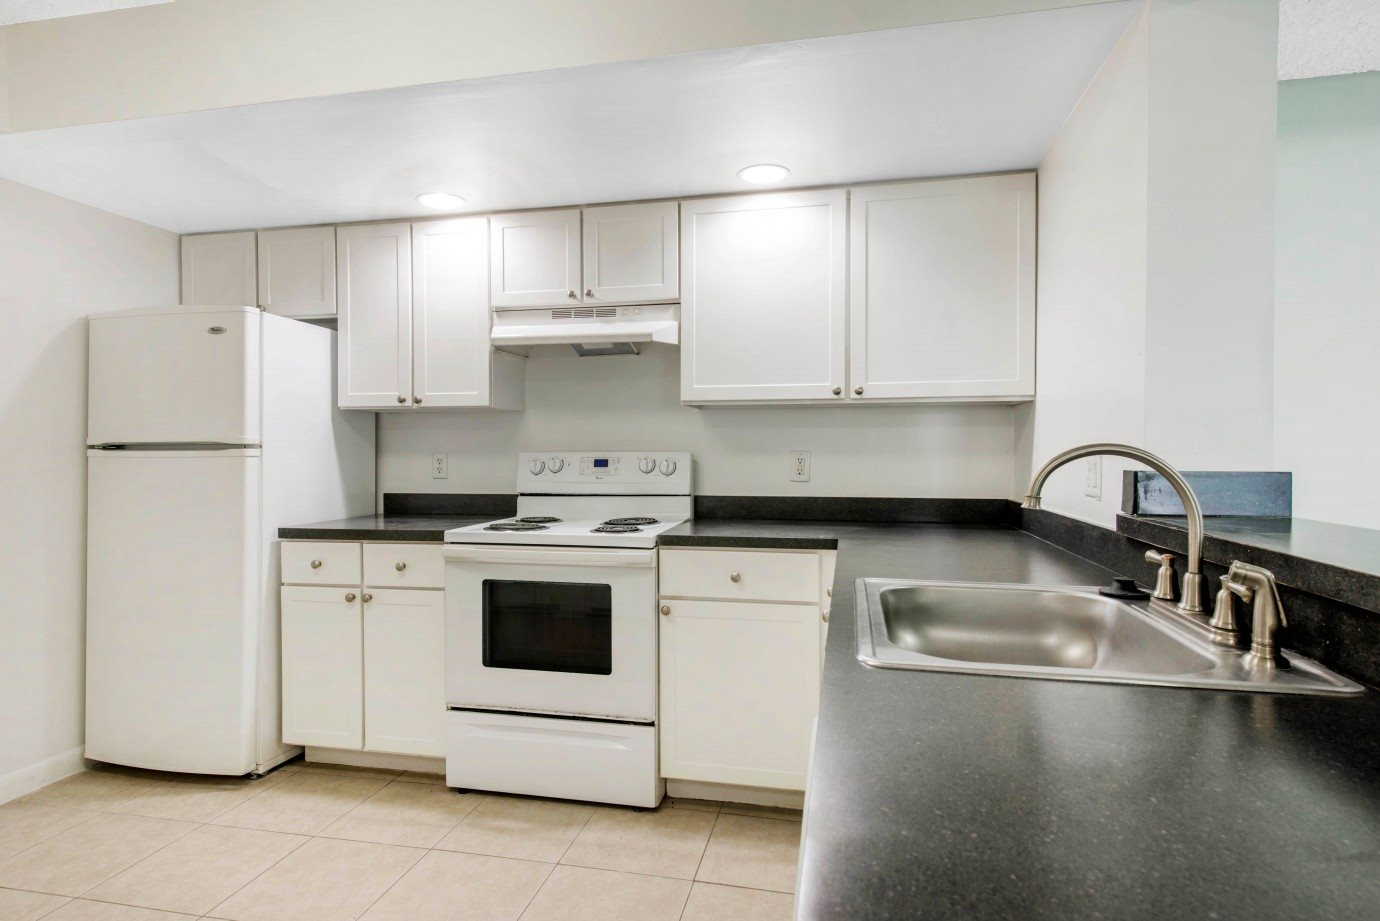 Photos and Video of Welleby Lake Club Apartments in Sunrise, FL